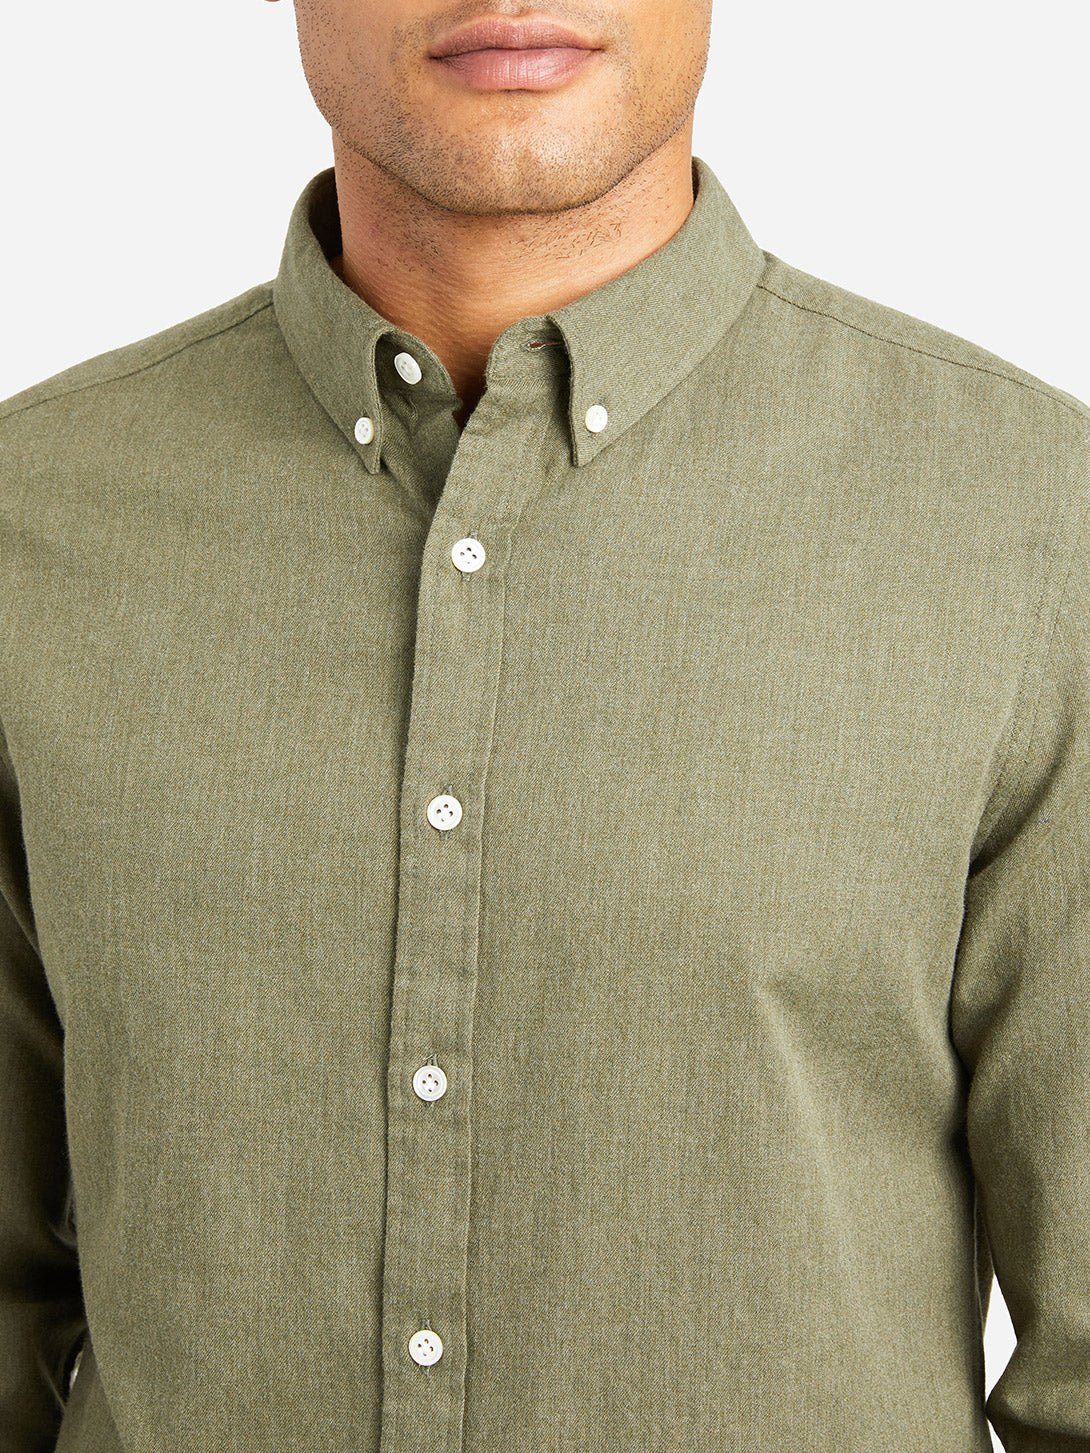 HEATHER GREEN button down collar shirt fulton peached twill shirt green heather